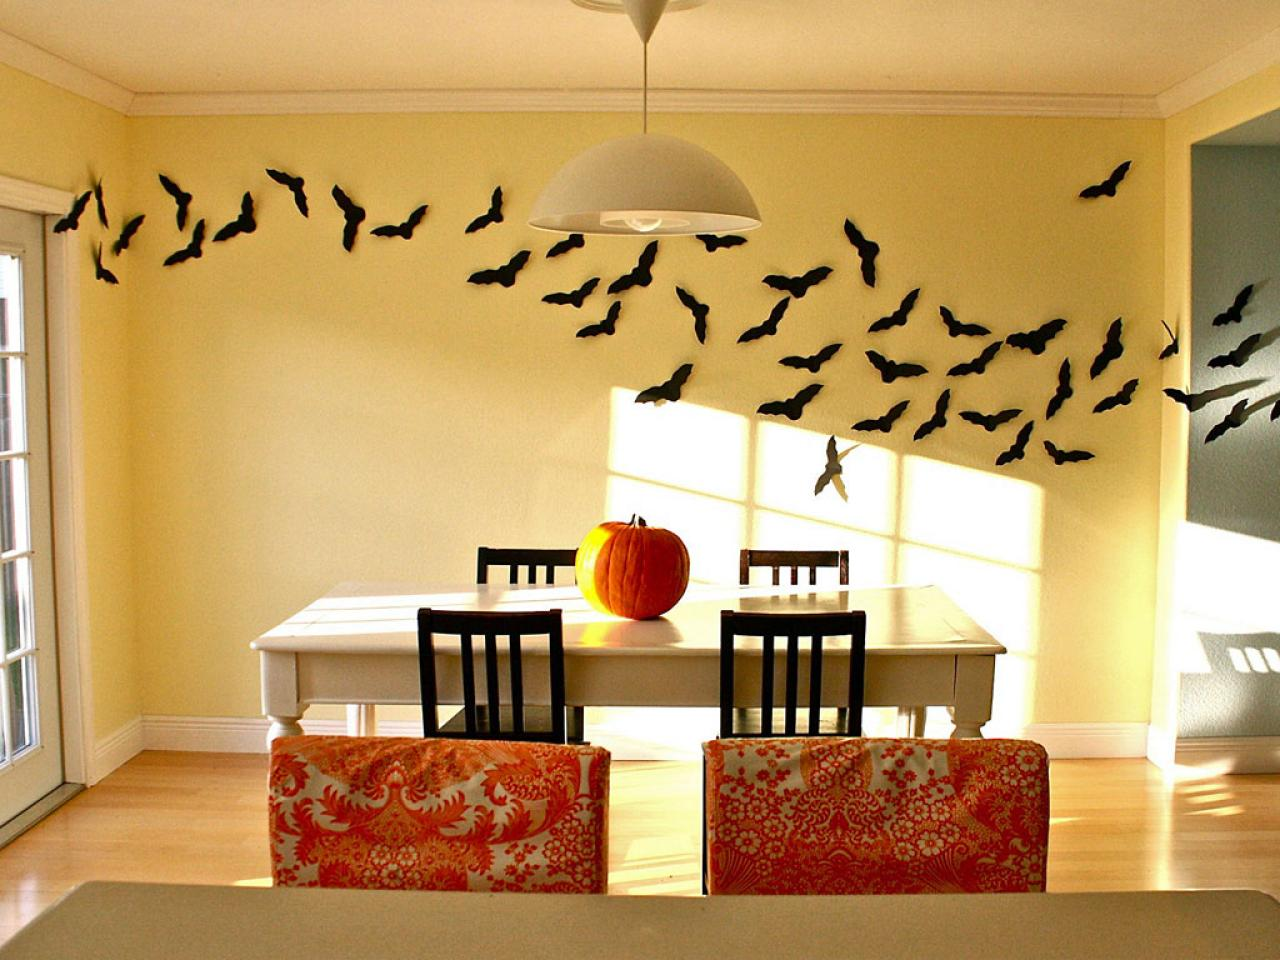 Wall décor with black bat paper cuts